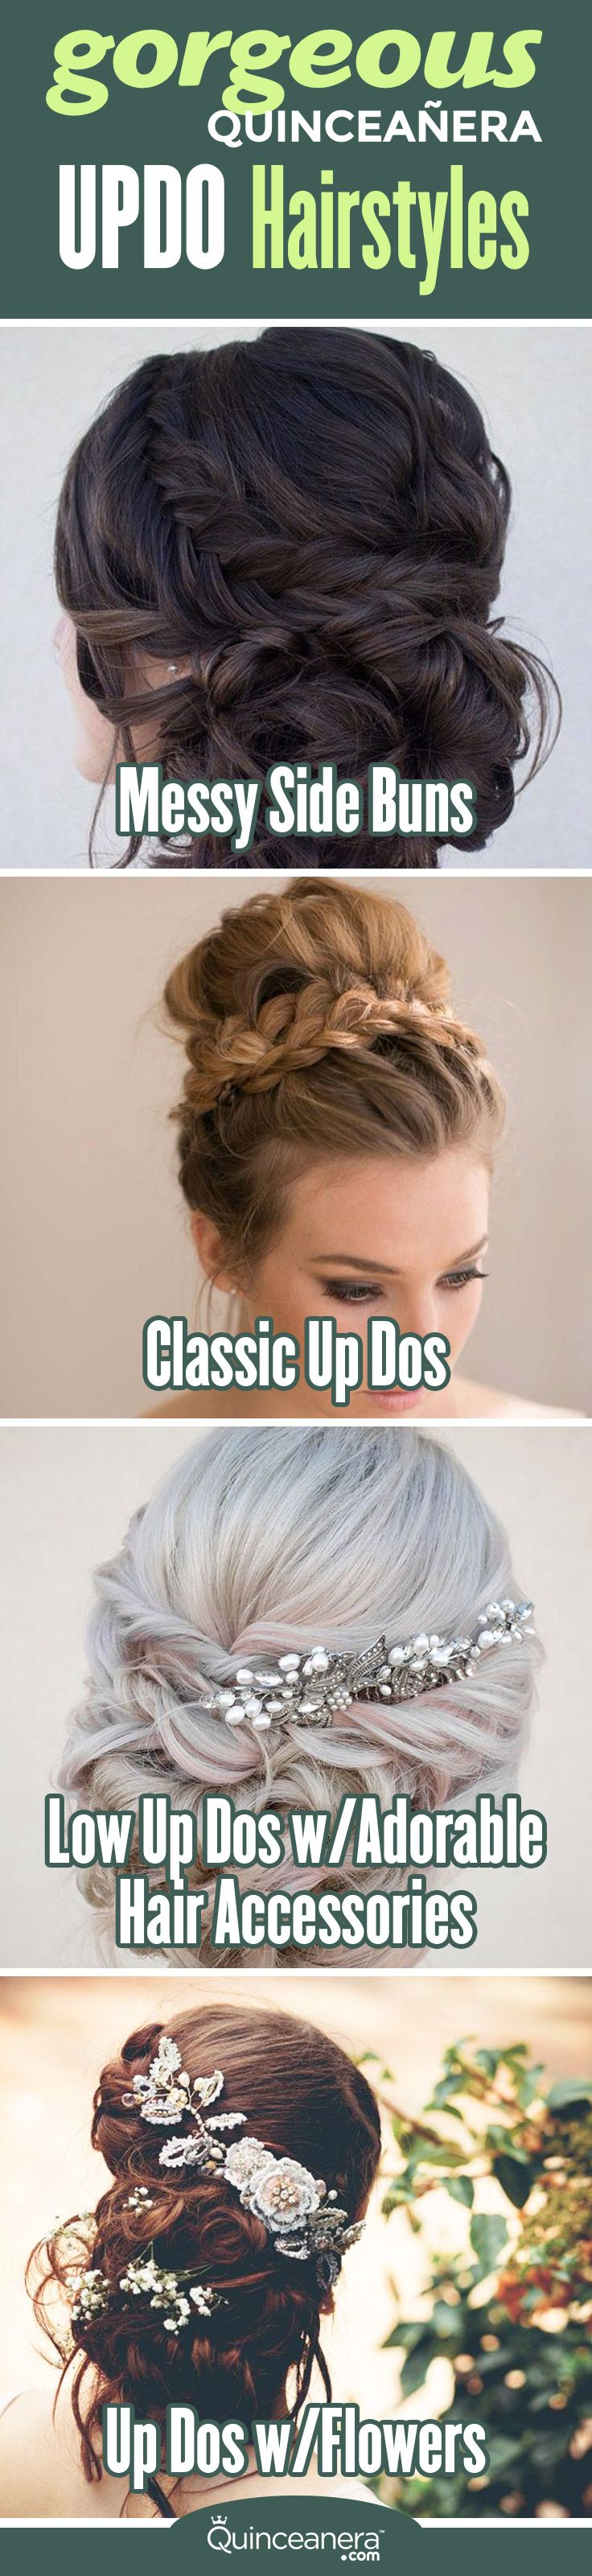 Dropdead gorgeous quinceanera updo hairstyles quinceanera